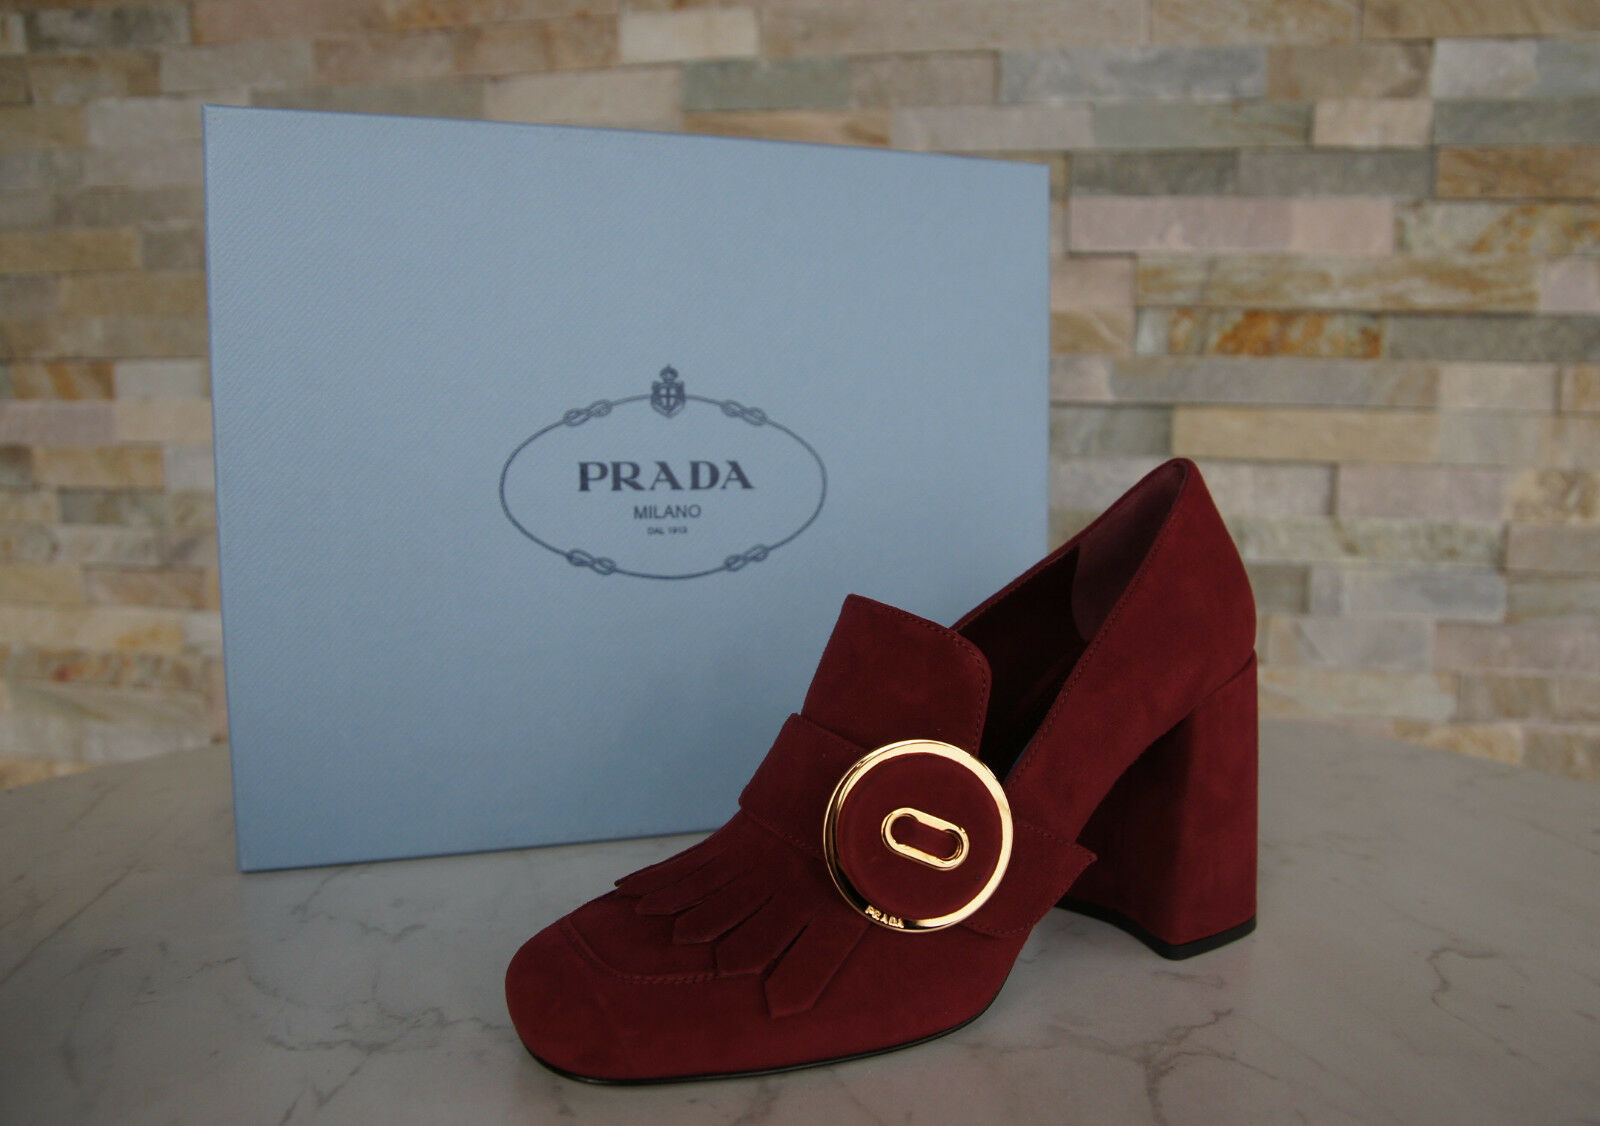 Luxus Prada Gr 37,5 Pumps Schuhe High Heels 1D723H rot purpur neu ehem.